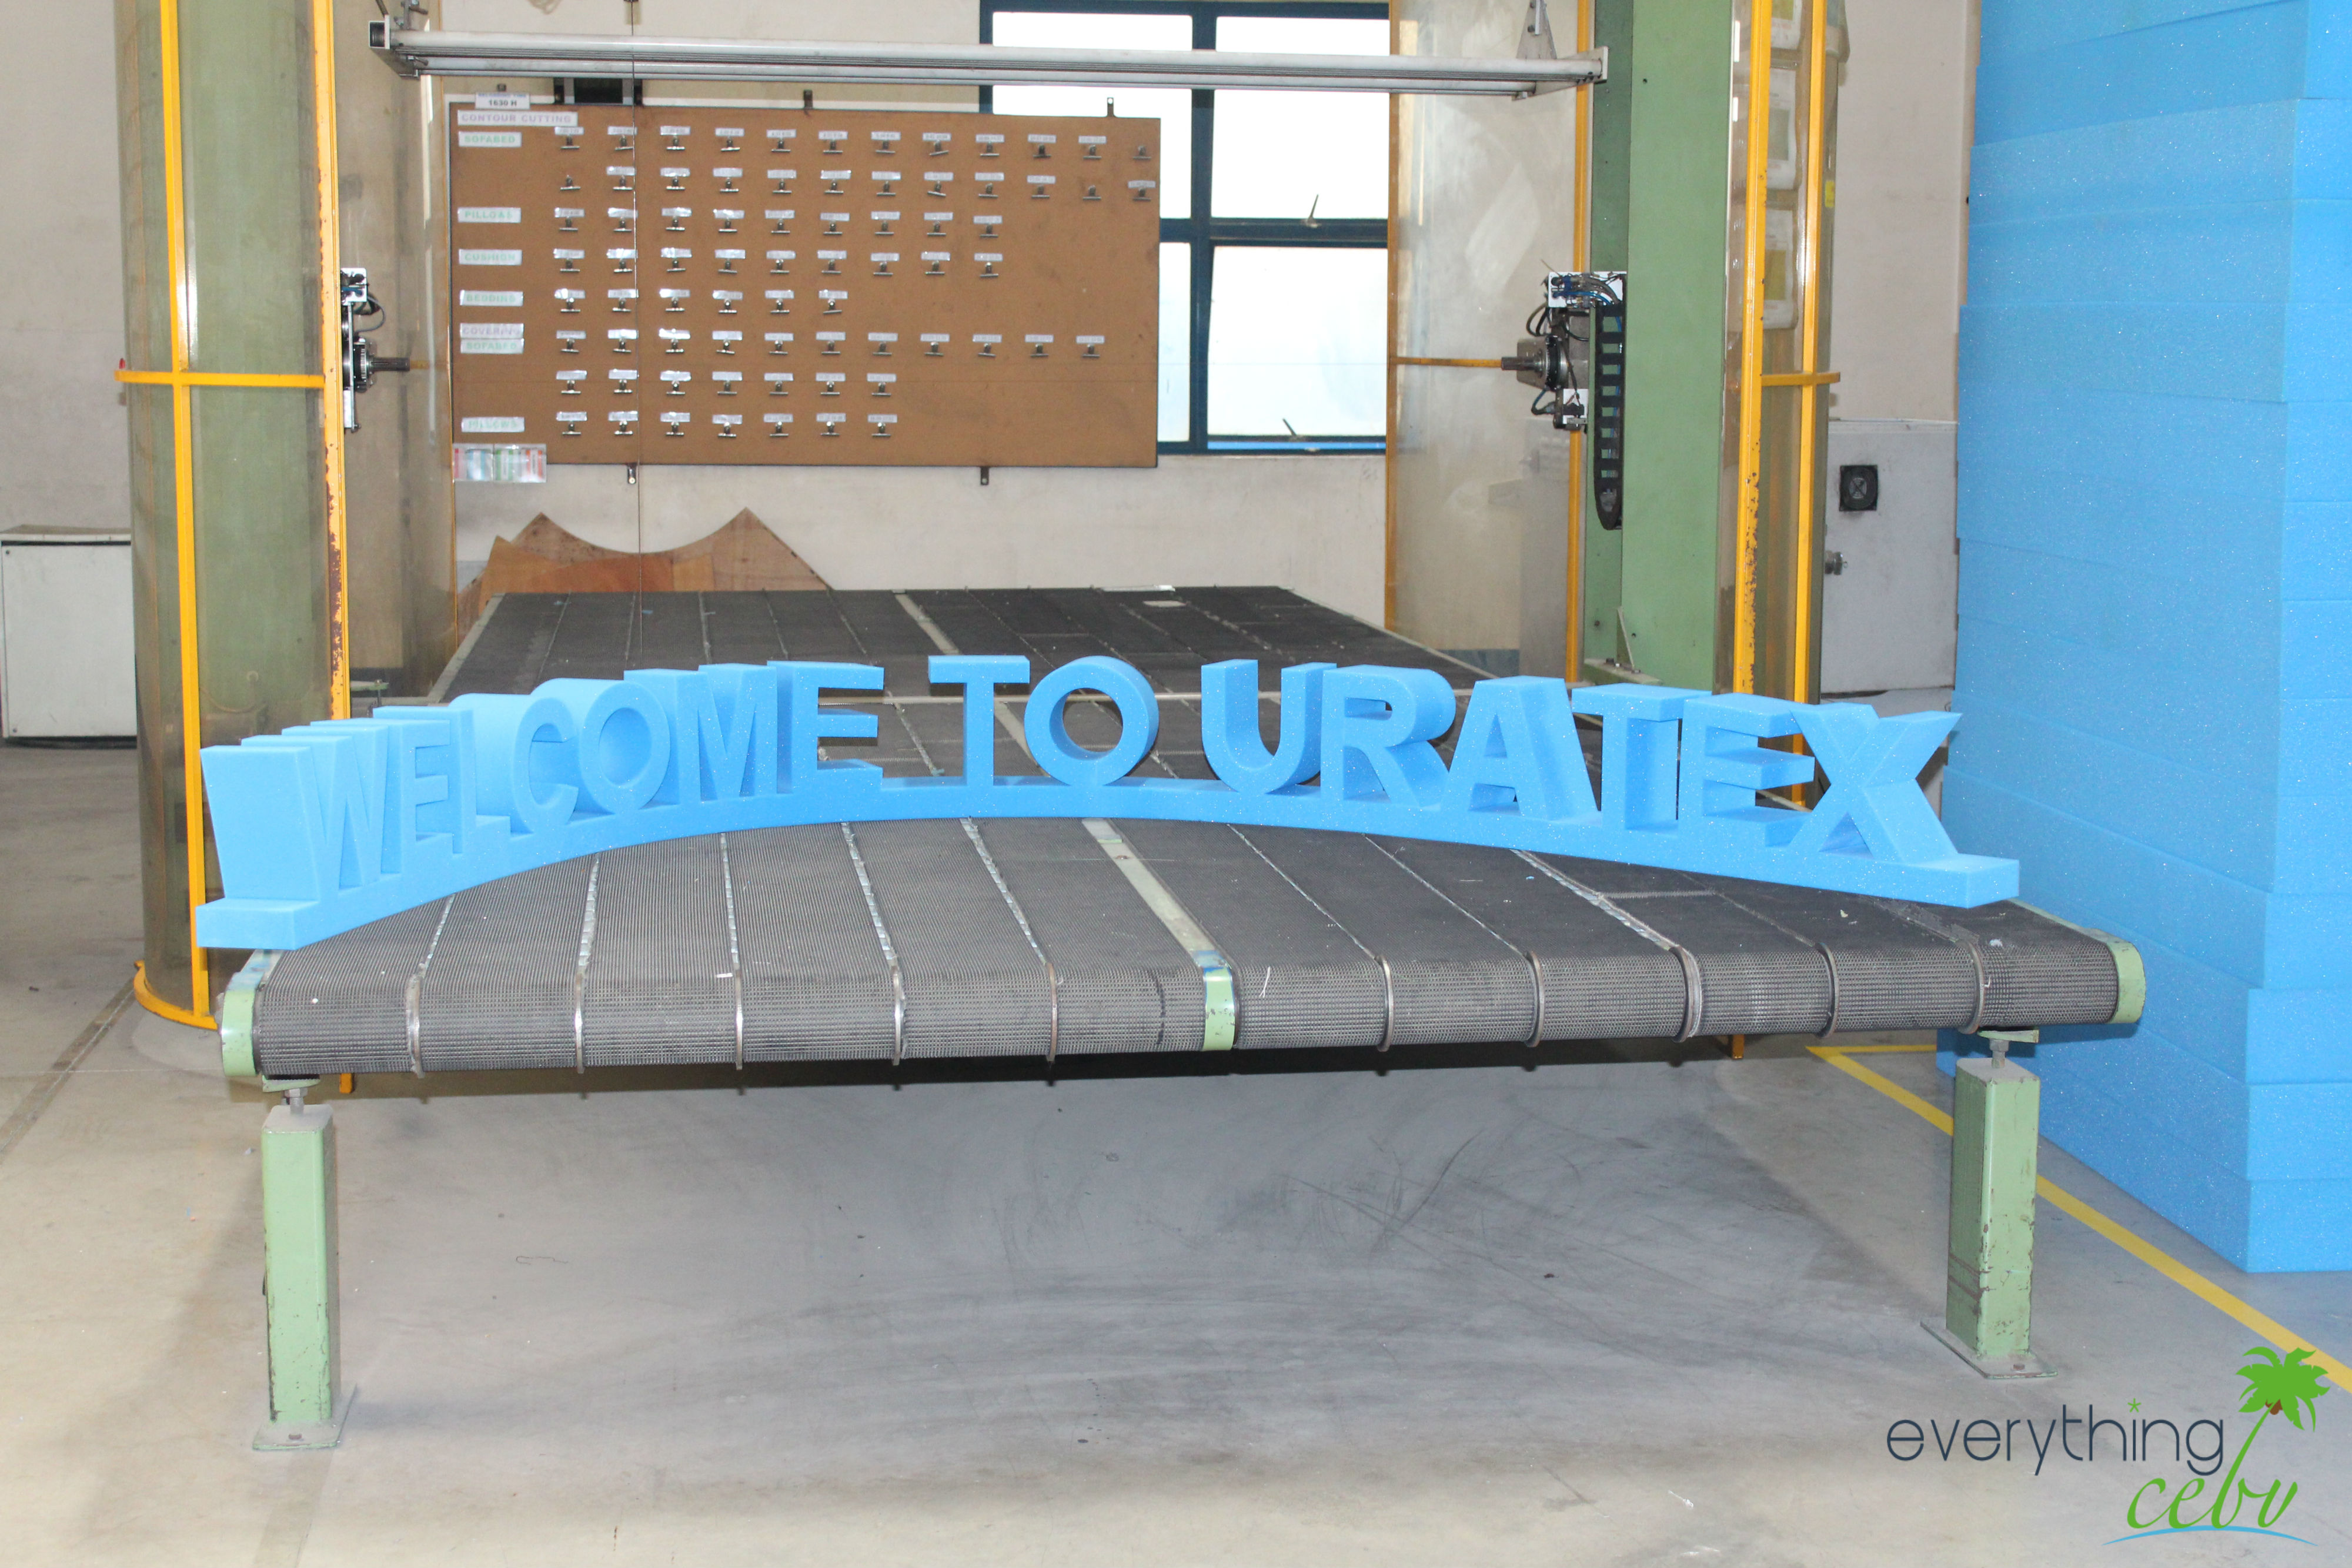 Related of uratex sofa bed price list - The Welcome To Uratex Sign Made Of Foam In The Plant S Cutting Area